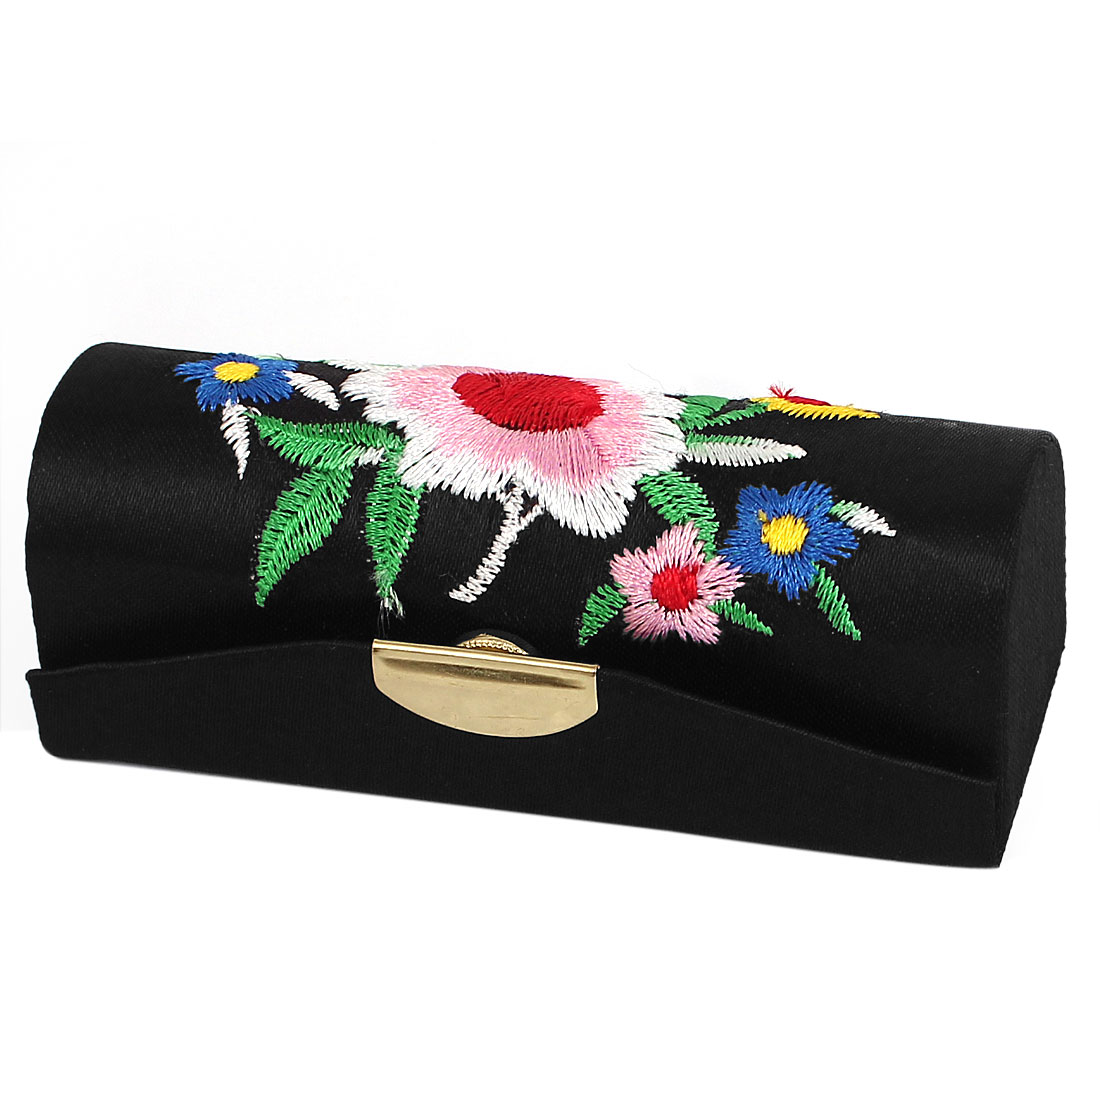 Lady Floral Embroidery Black Lipstick Lip Chap Stick Case Box Cosmetics Makeup Compact w Mirror